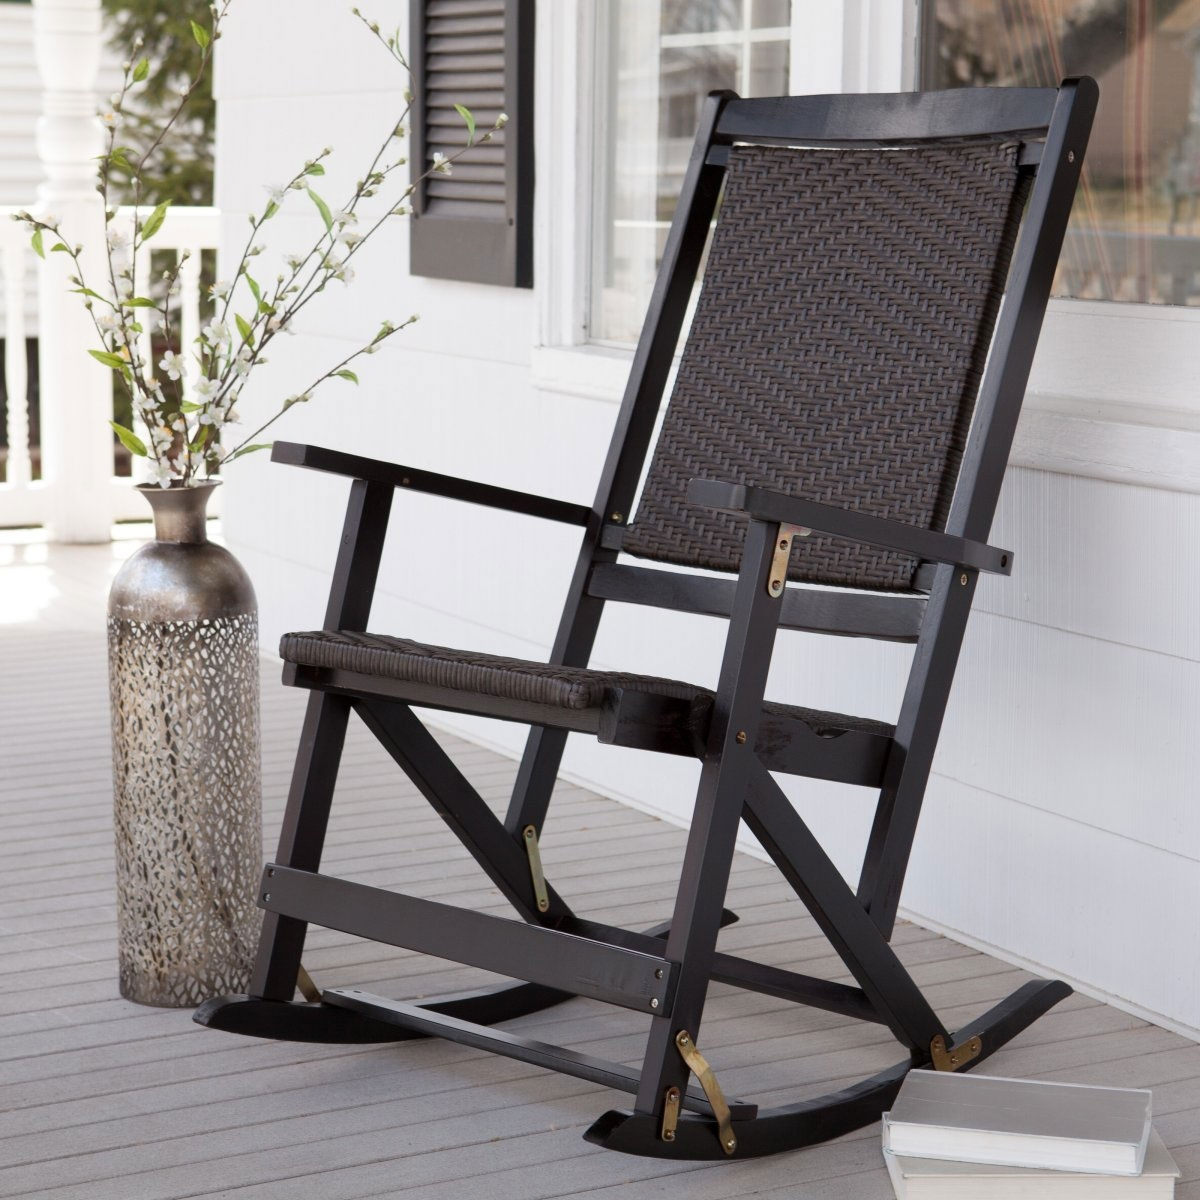 Outdoor Metal Rocking Chair Modern Chairs Quality Interior Lawn Pertaining To Vintage Outdoor Rocking Chairs (View 5 of 15)